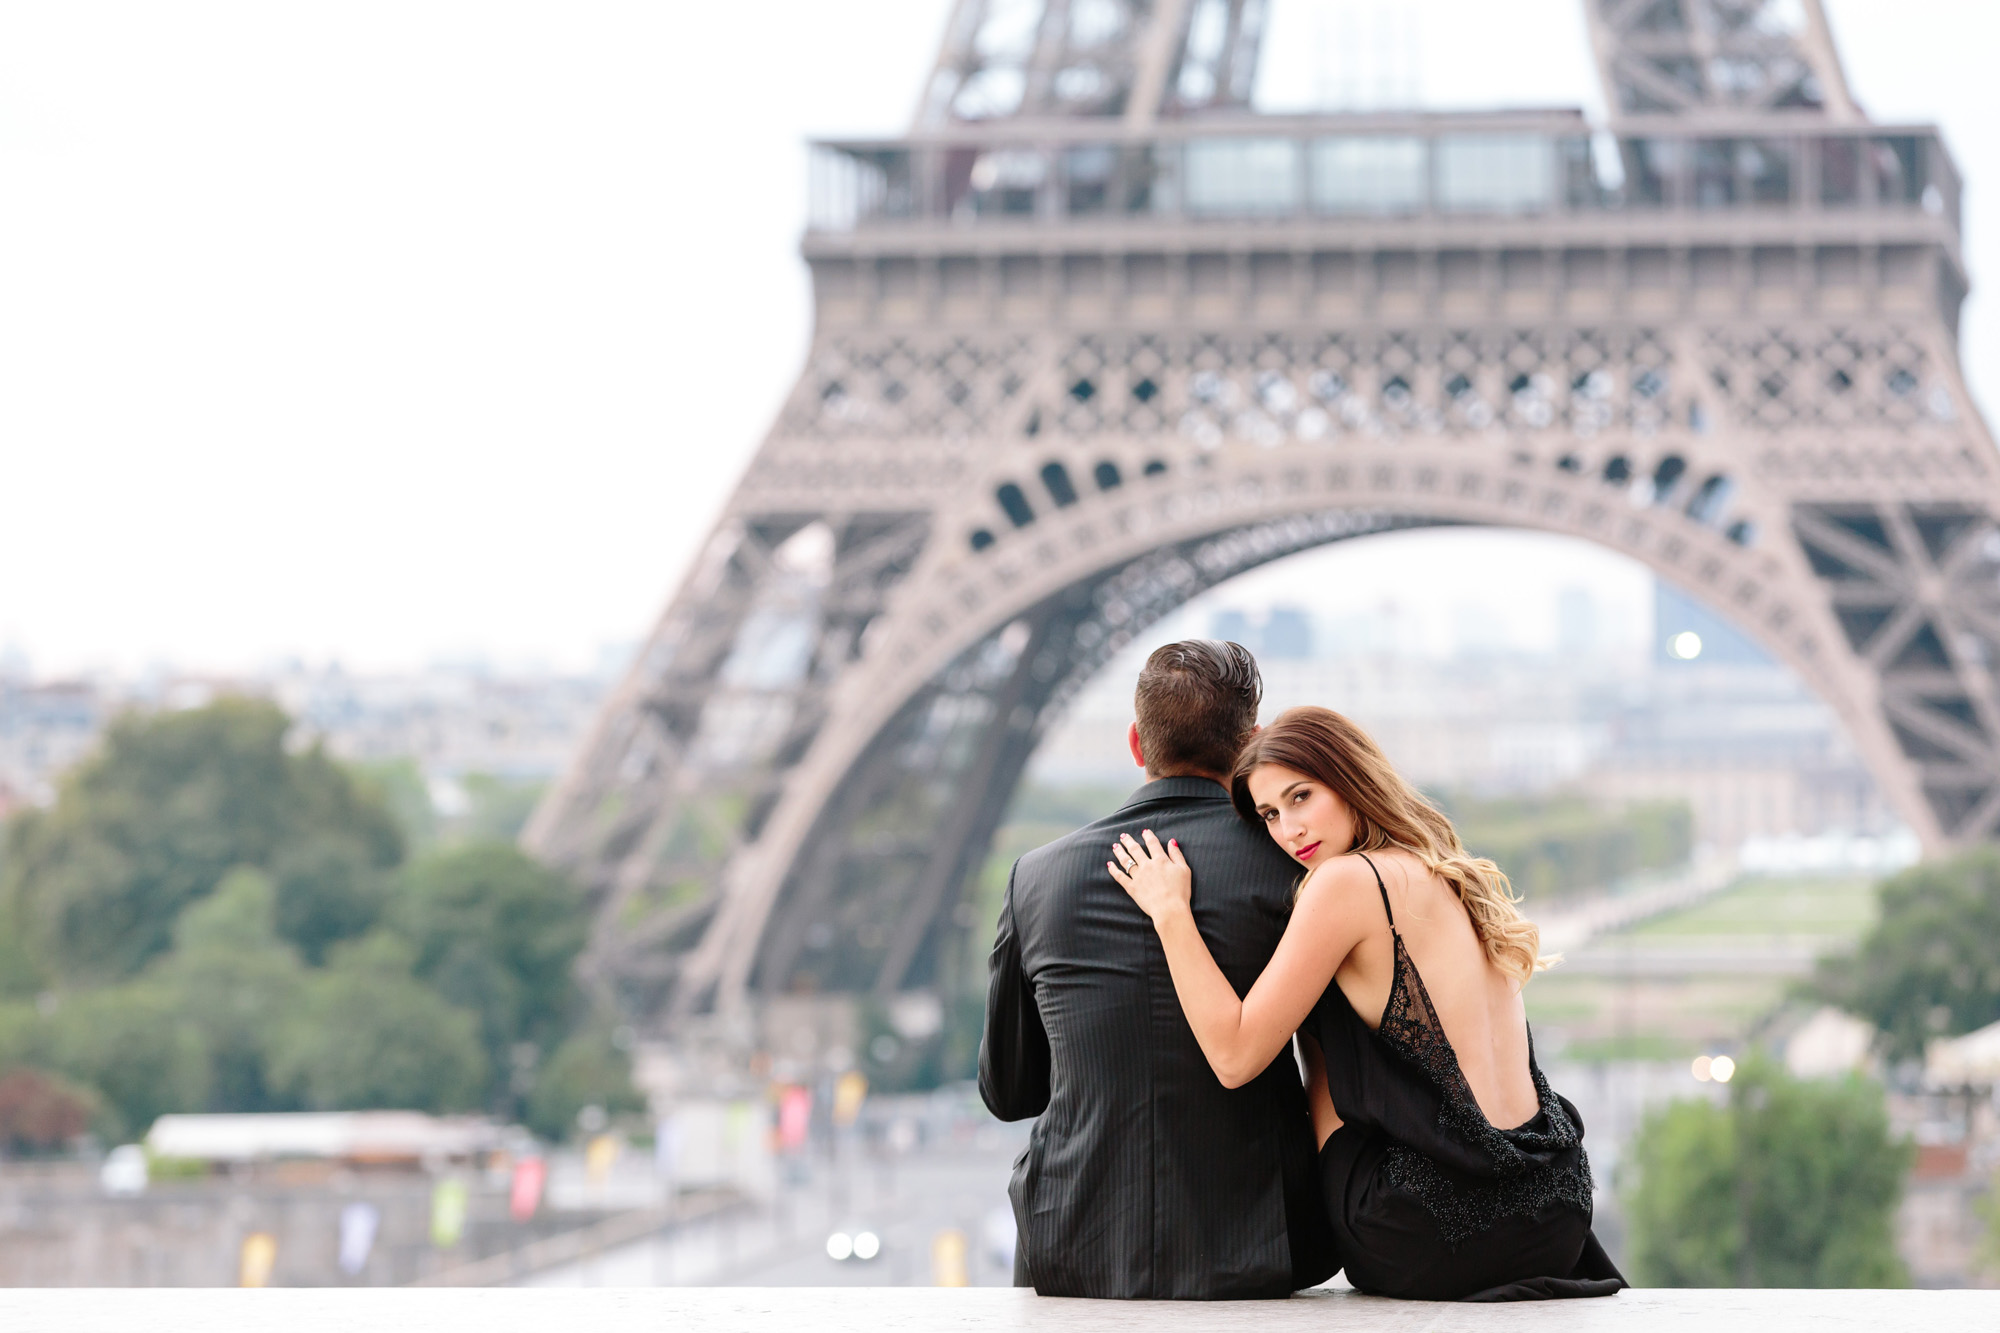 Paris Photographer Travel Lovestory Eiffel Tower Trocadero IheartParisfr